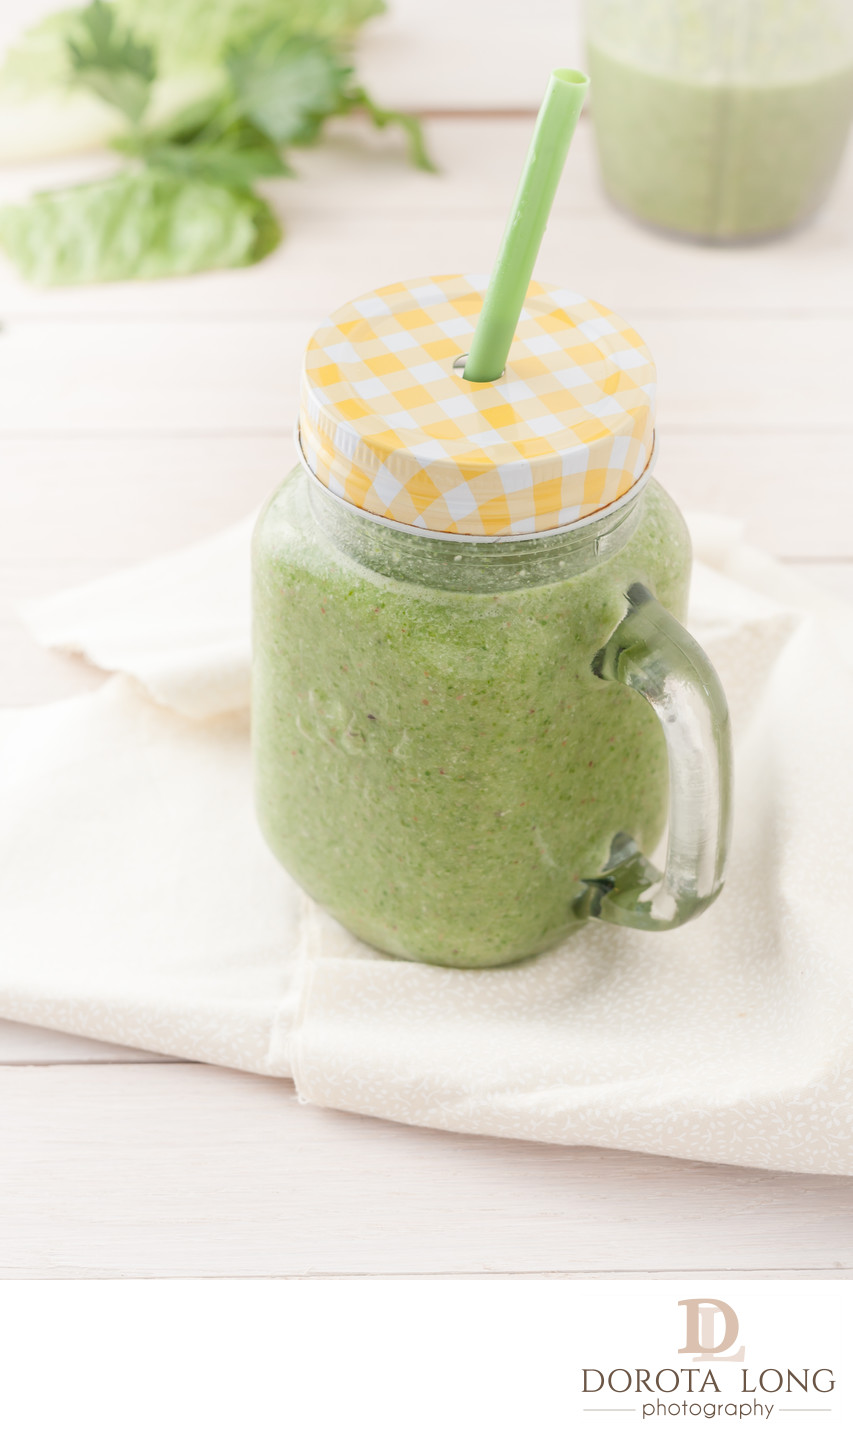 green smoothie in a glass jar with lid and a straw